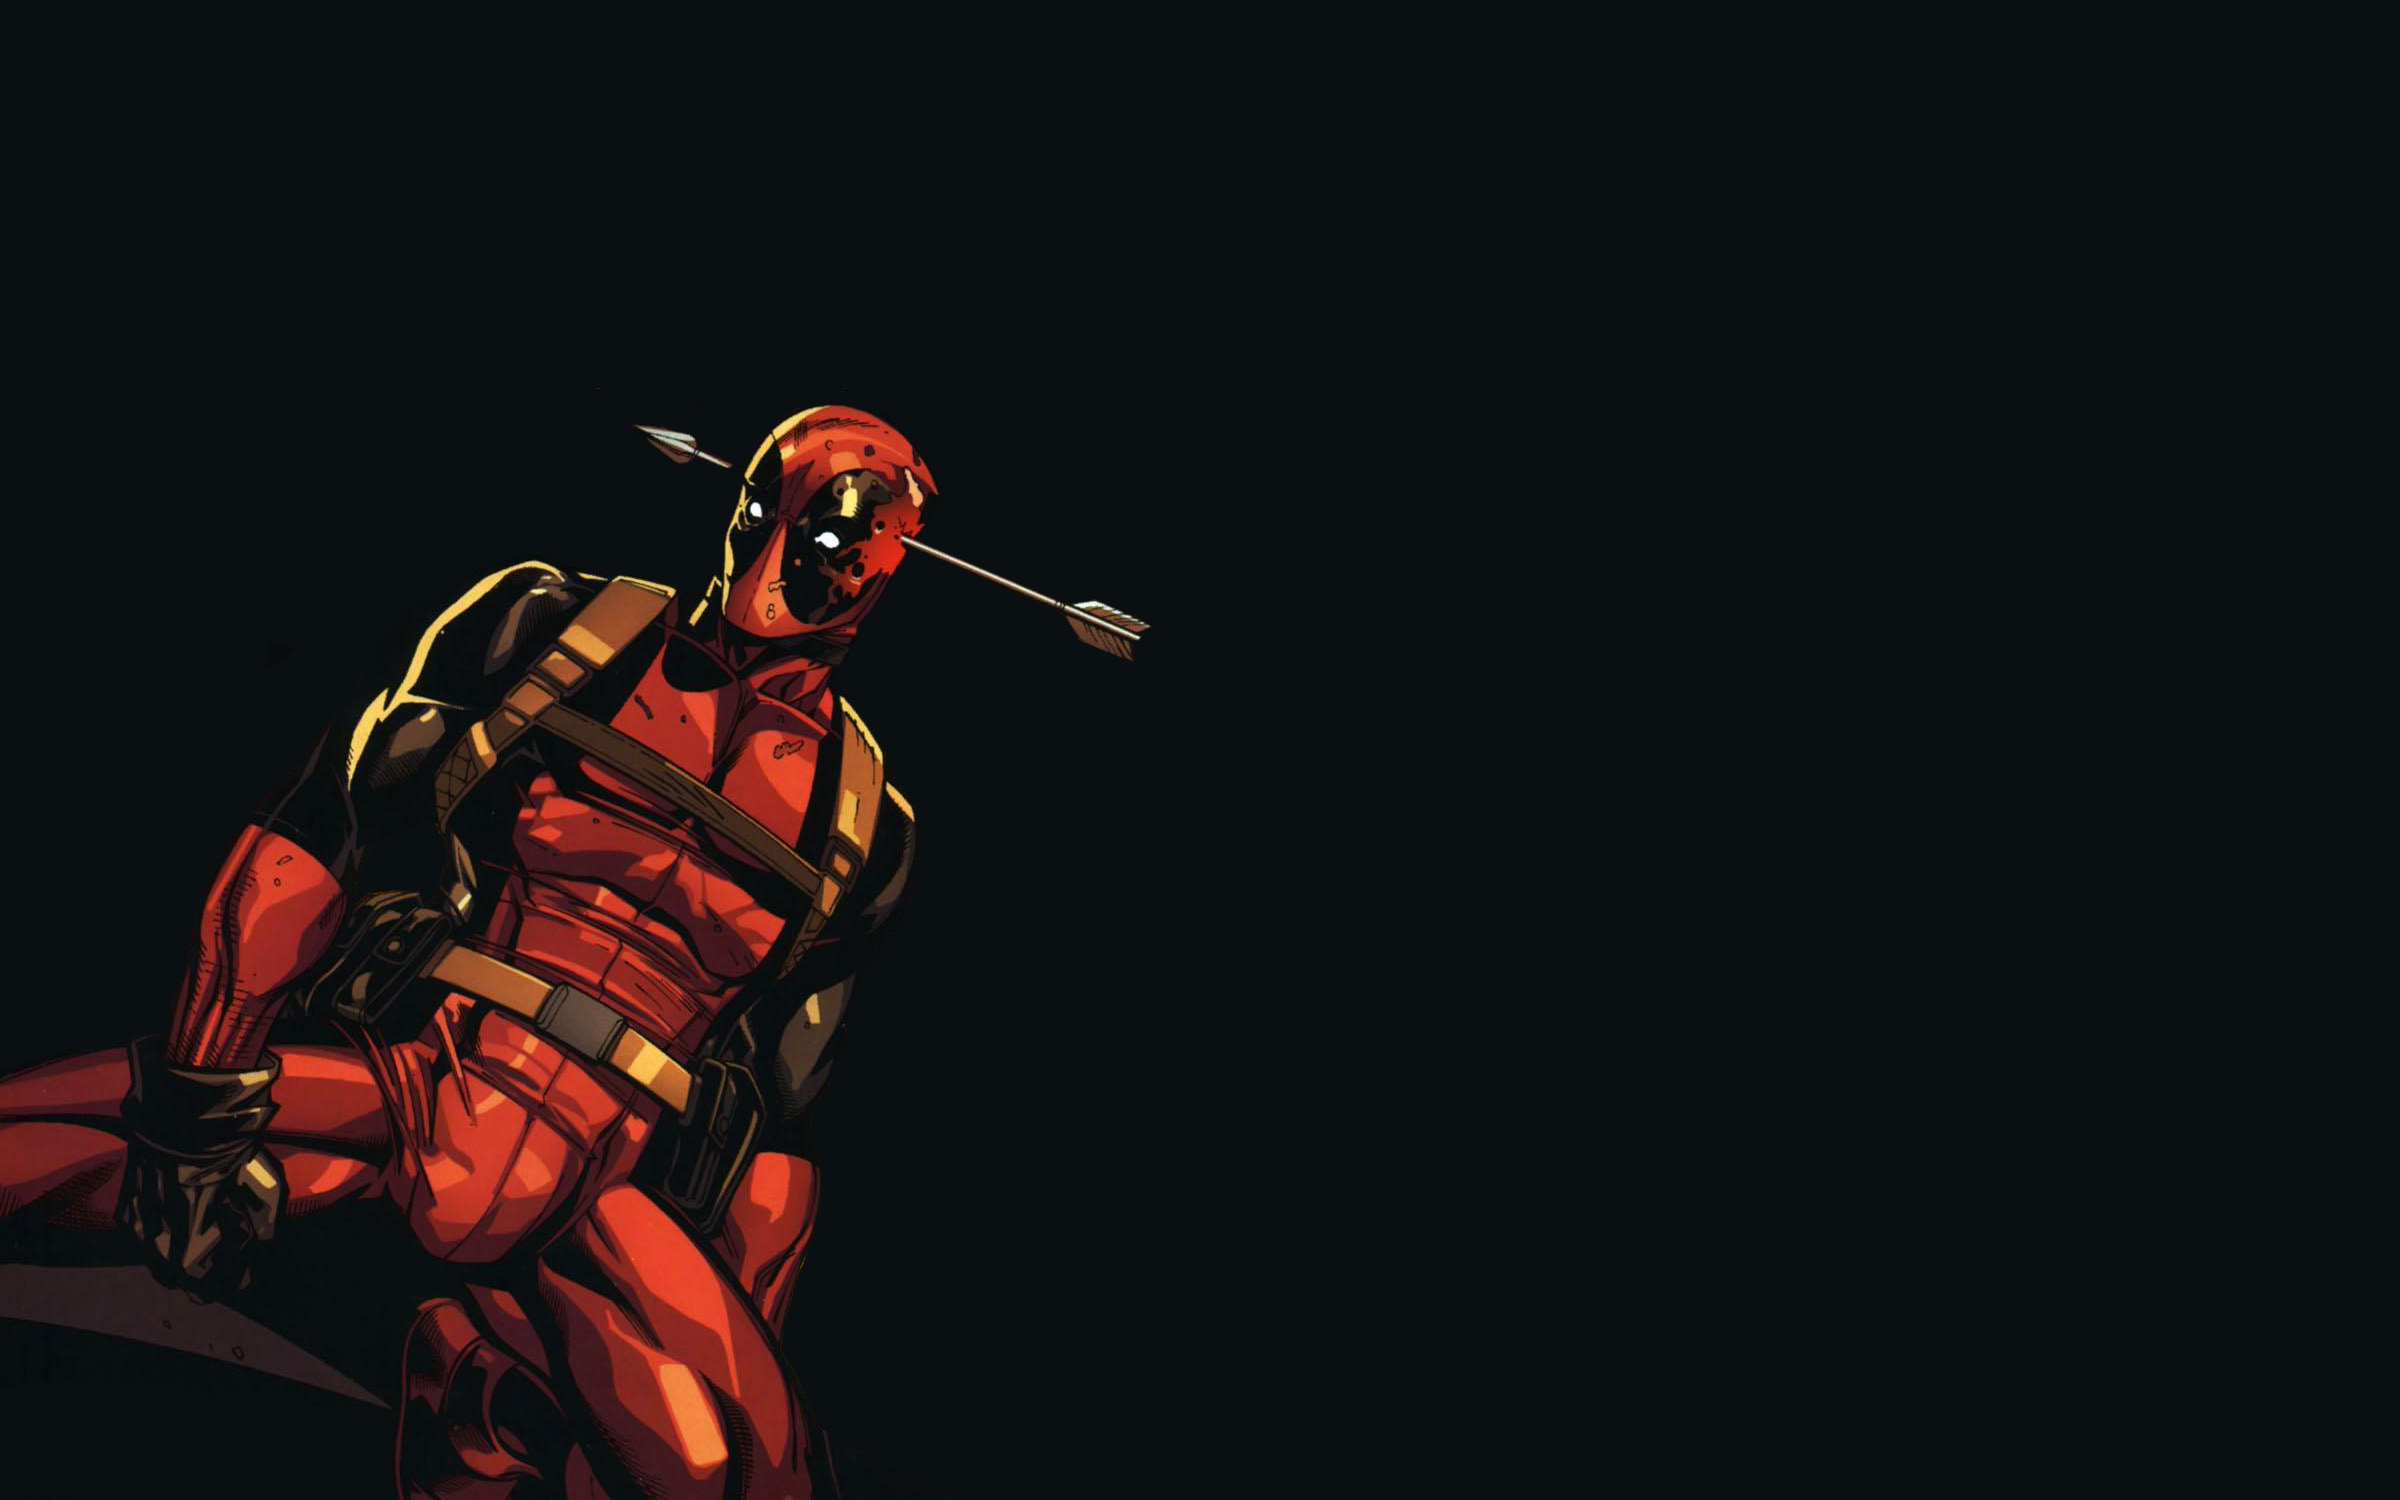 Deadpool Wallpaper Wide Awesome pftm704g   Yoanucom 2400x1500